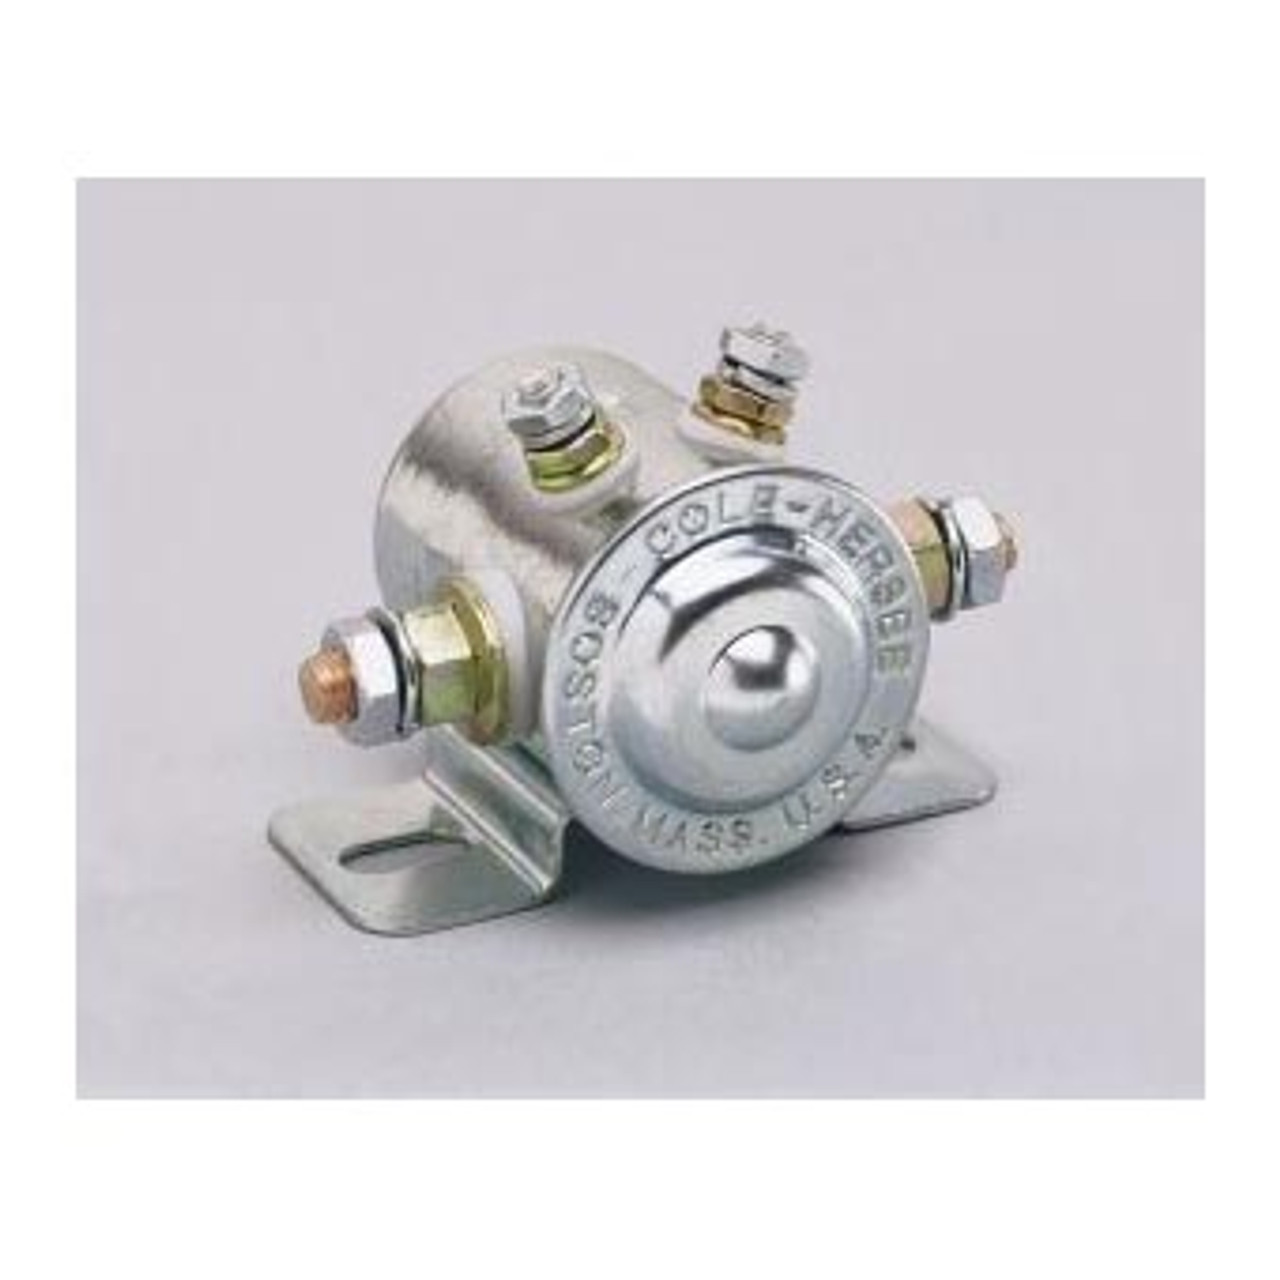 SOLENOID 12V CONTINUOUS INSULATED 85 AMP SPST